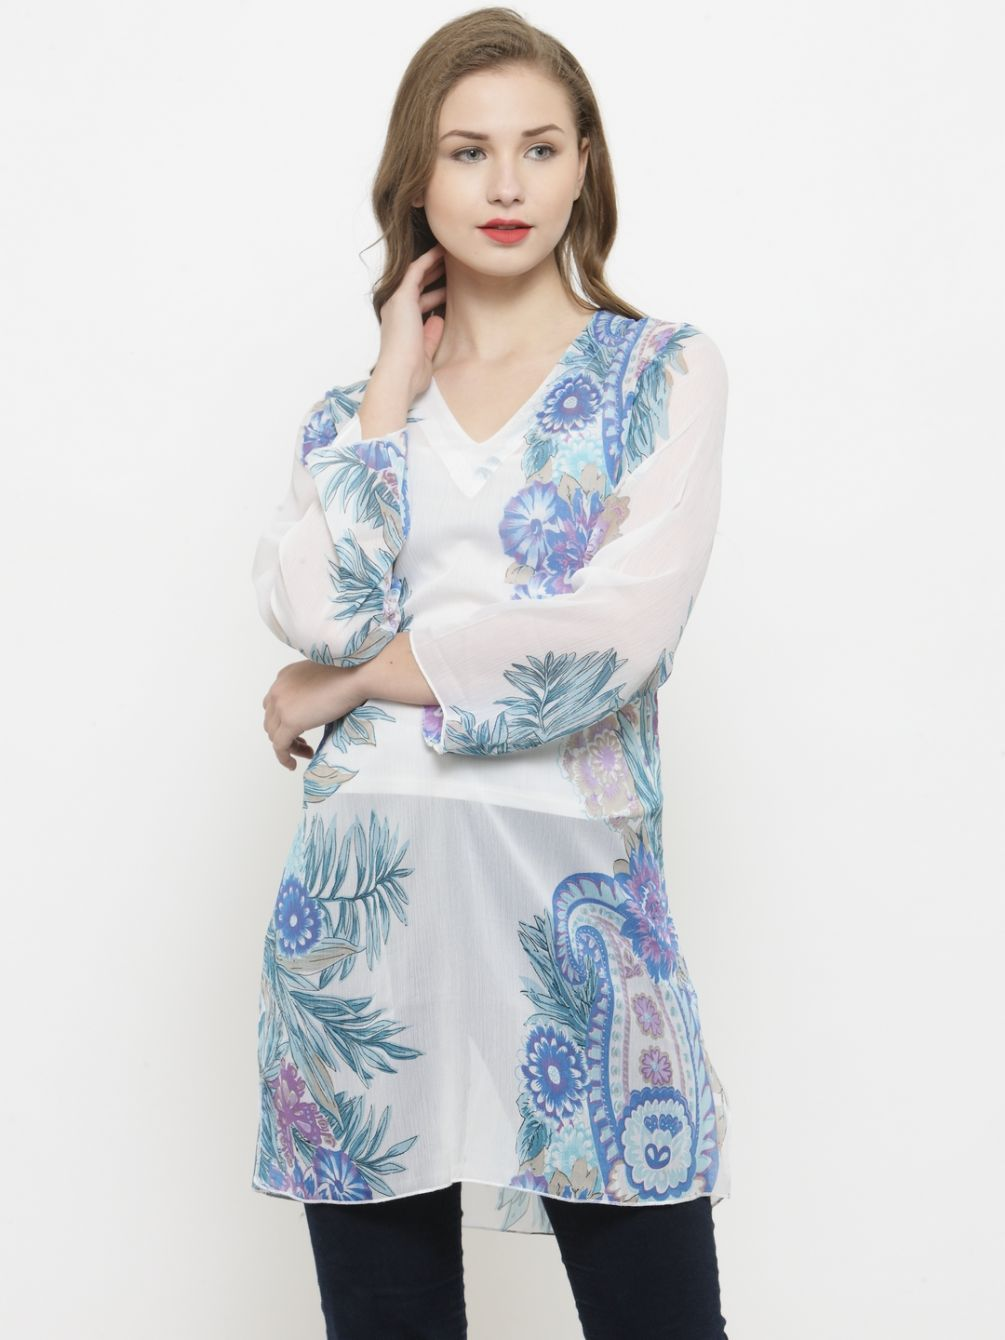 Querida White / Blue Floral Printed Sheer Tunic Top